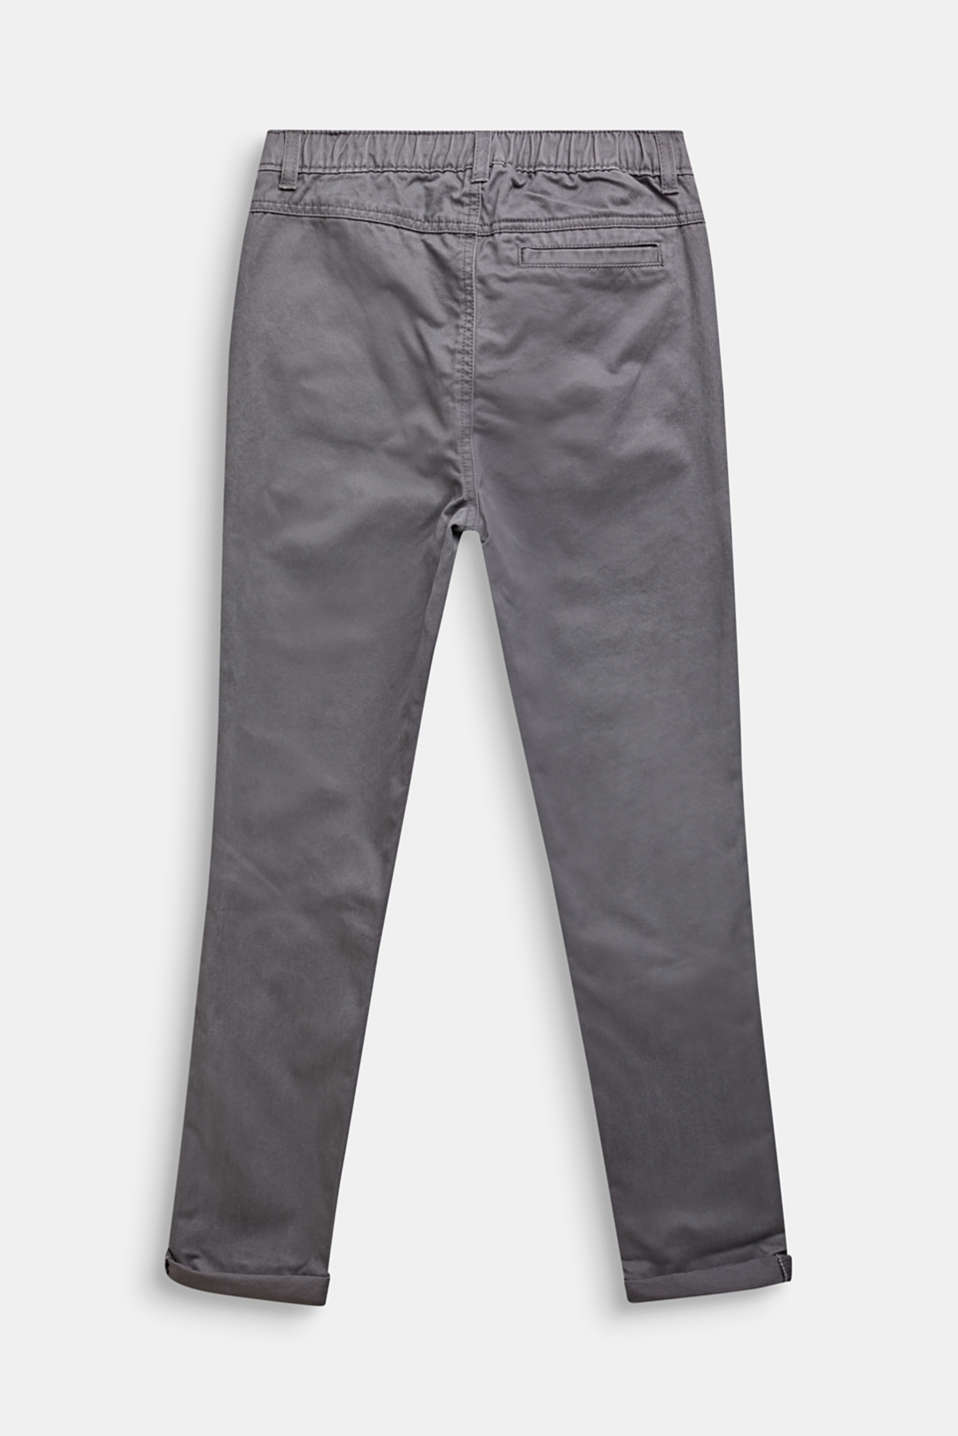 Trousers with a drawstring waistband, 100% cotton, LCGREY STONE, detail image number 1